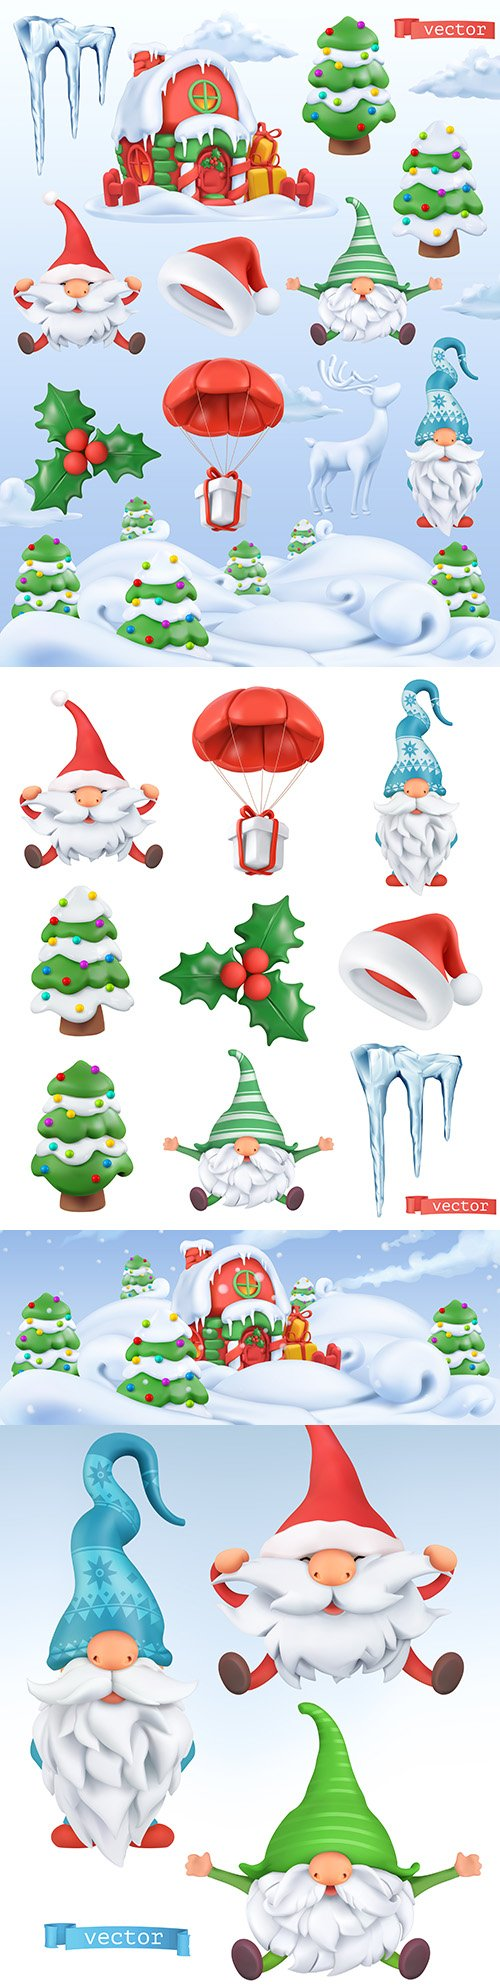 Christmas characters cartoon 3d icon illustration